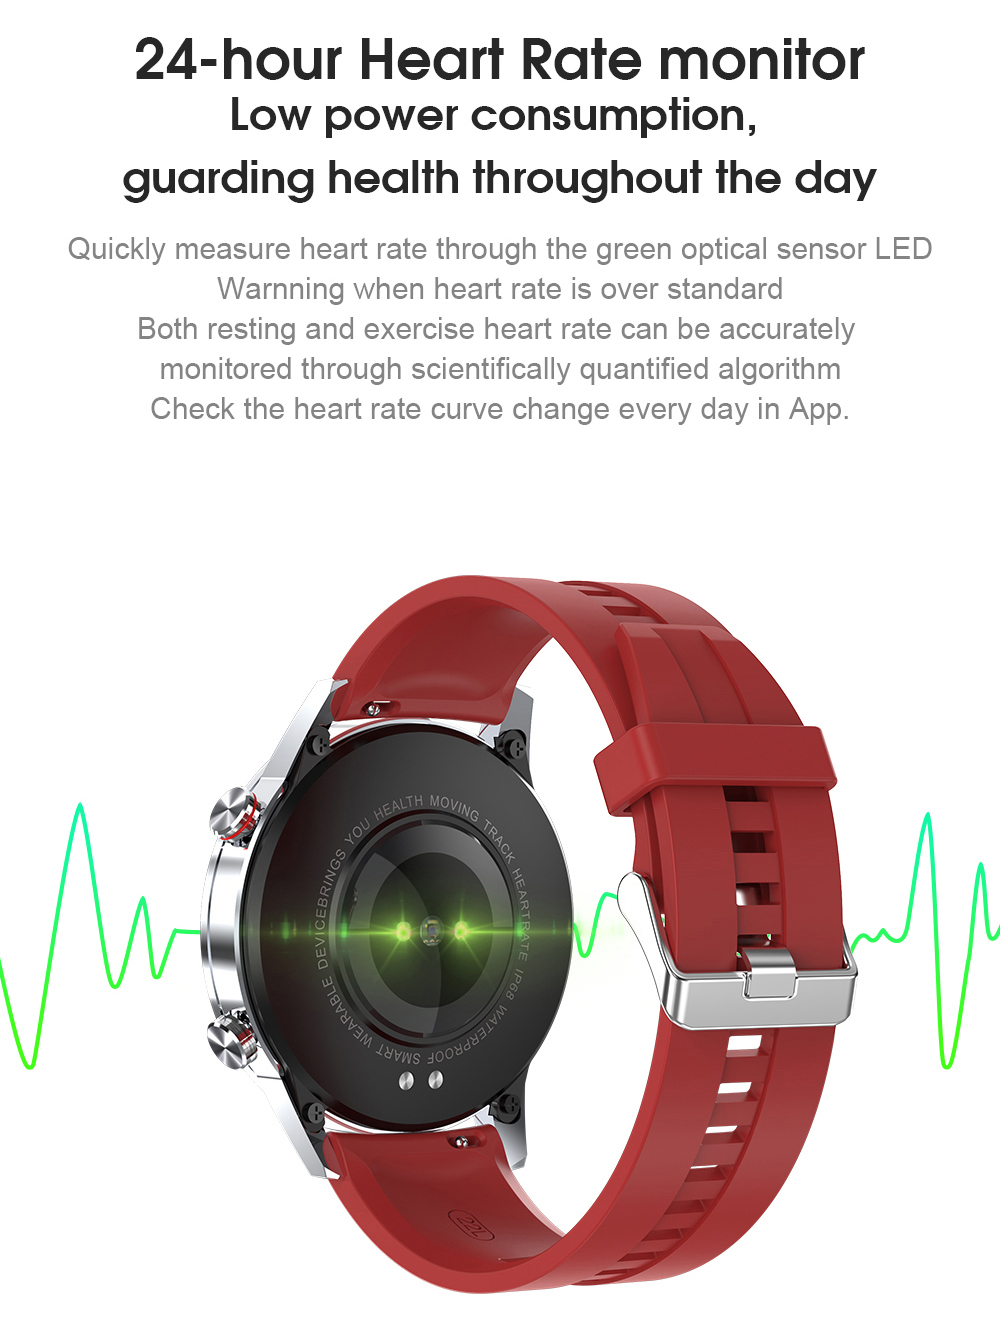 H9c0de8e473e240b6b21f784e30f27b64w Reloj Inteligente Hombre Smartwatch Ecg Ppg IP68 Smarthwatch Men Full Touch Smart Watch 2020 For Huawei Xiaomi Android Apple IOS